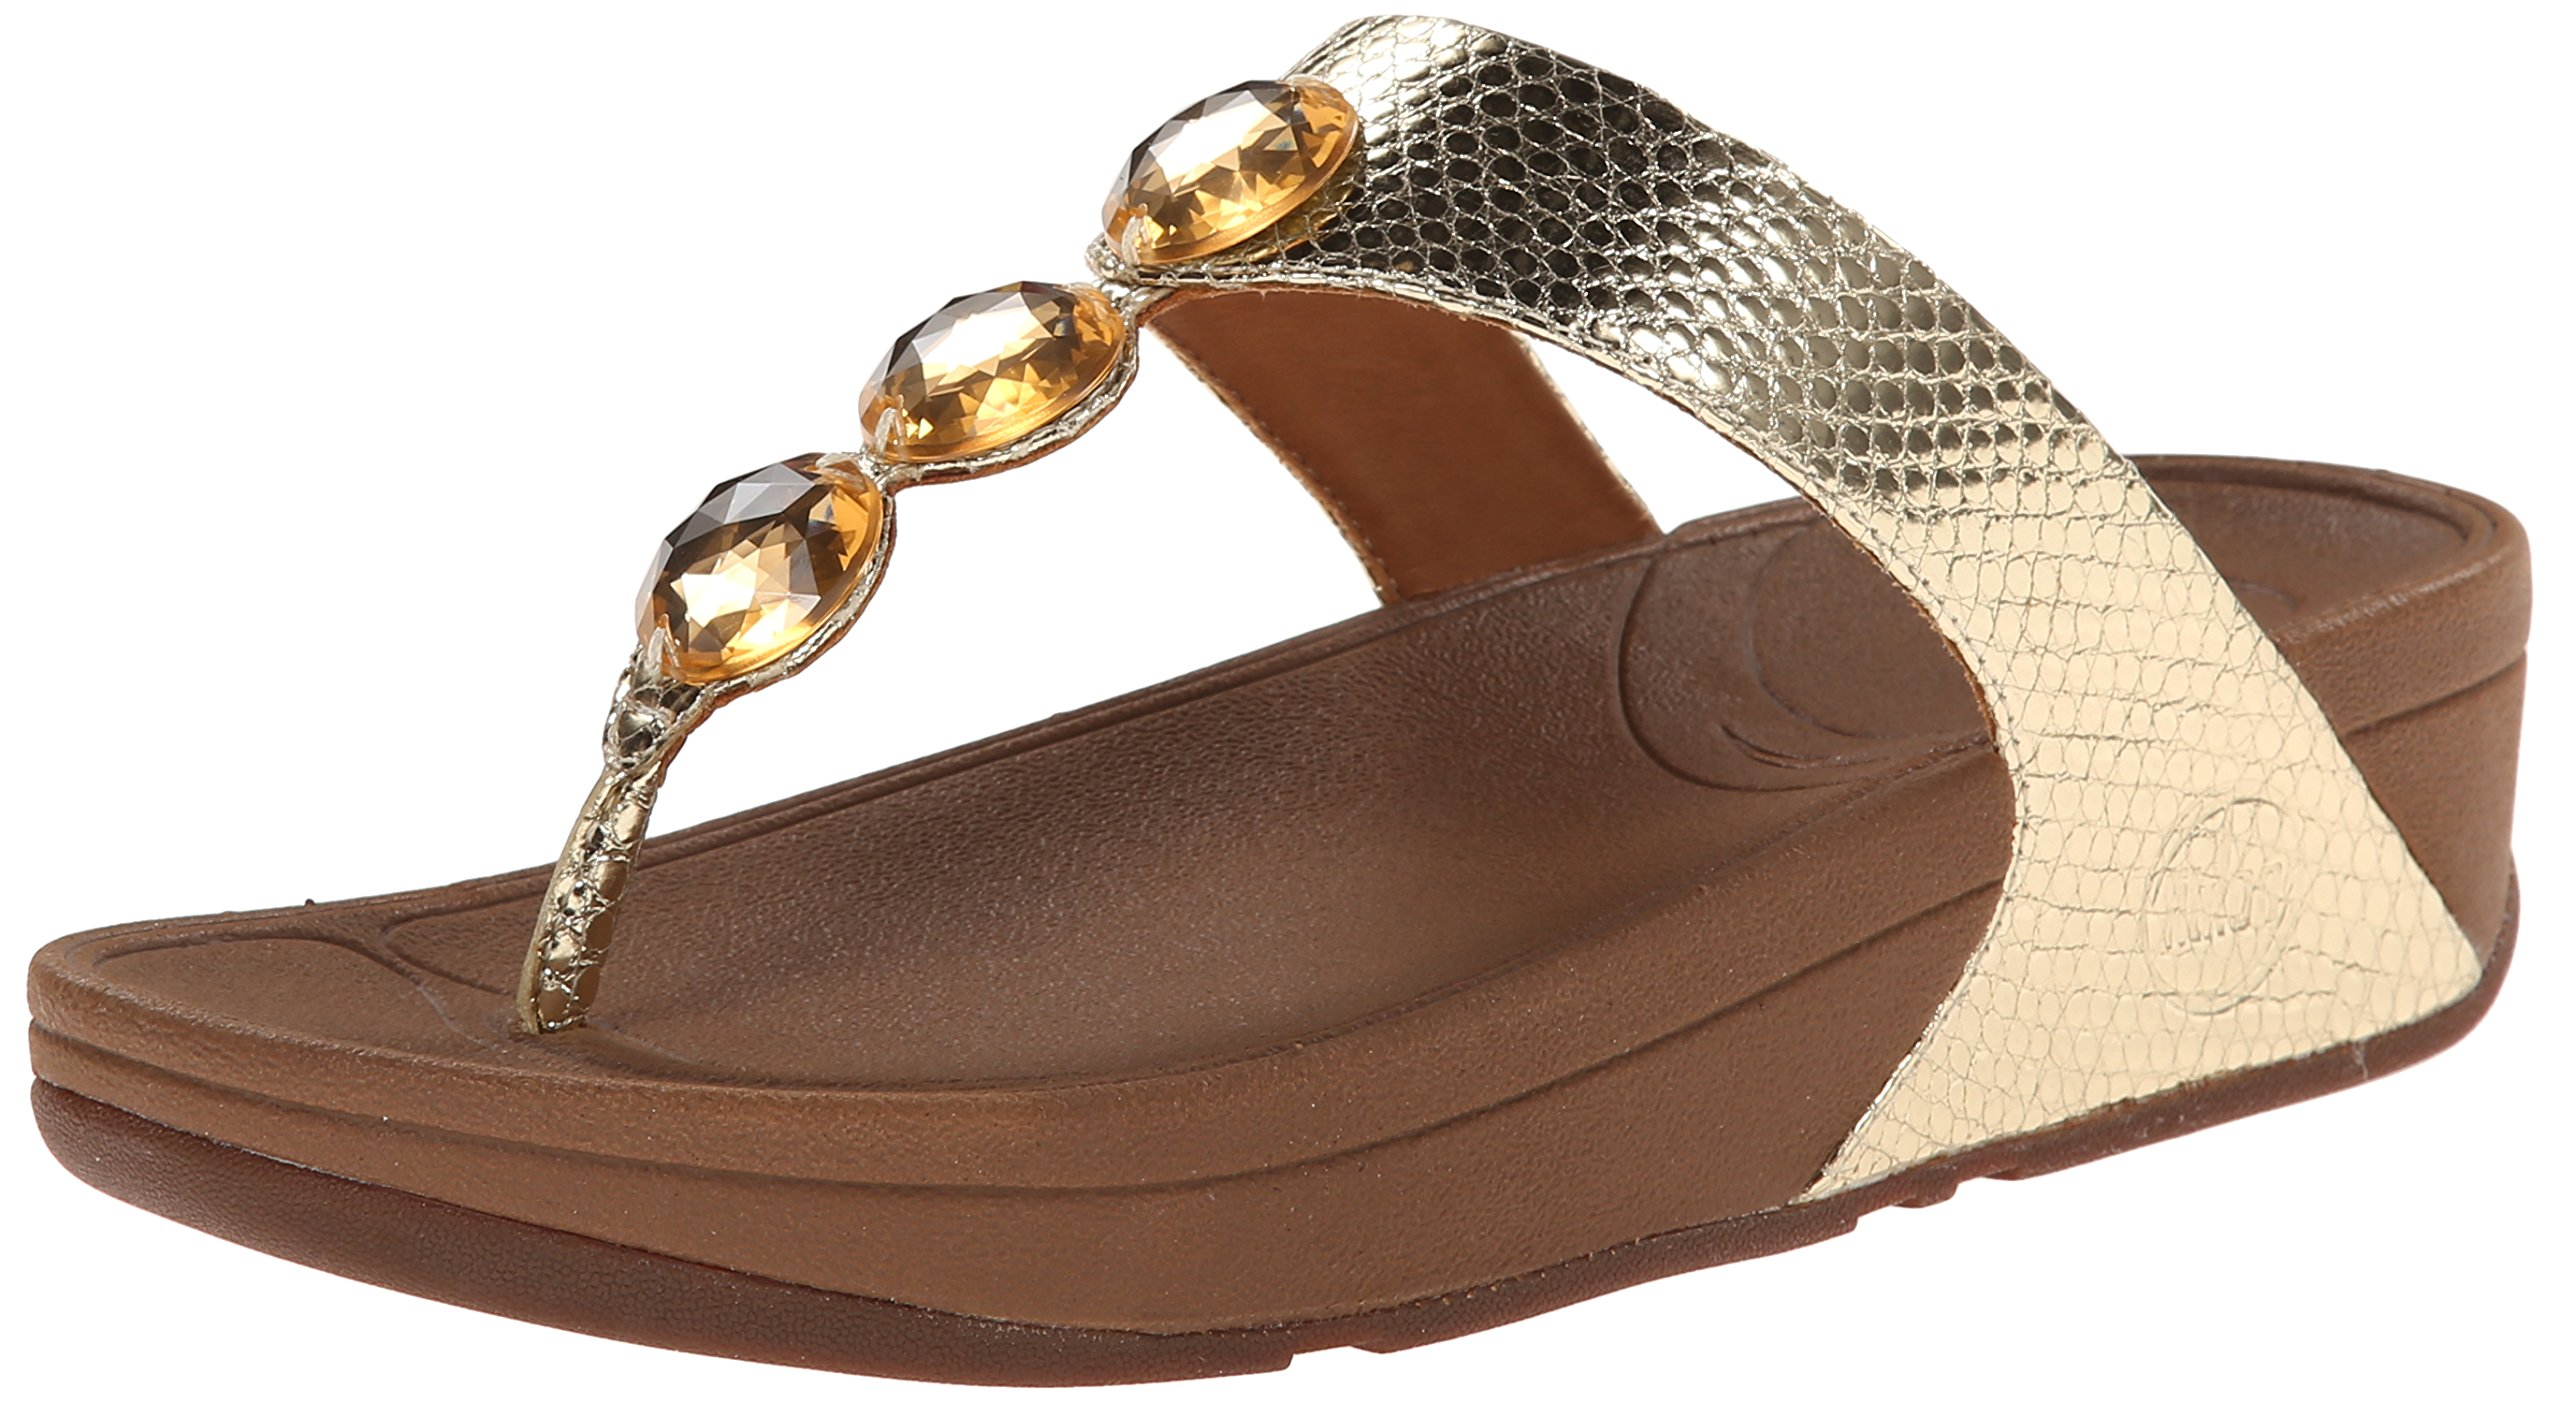 FitFlop Women's Petra Flip Flop, Pale Gold, 8 M US by FitFlop